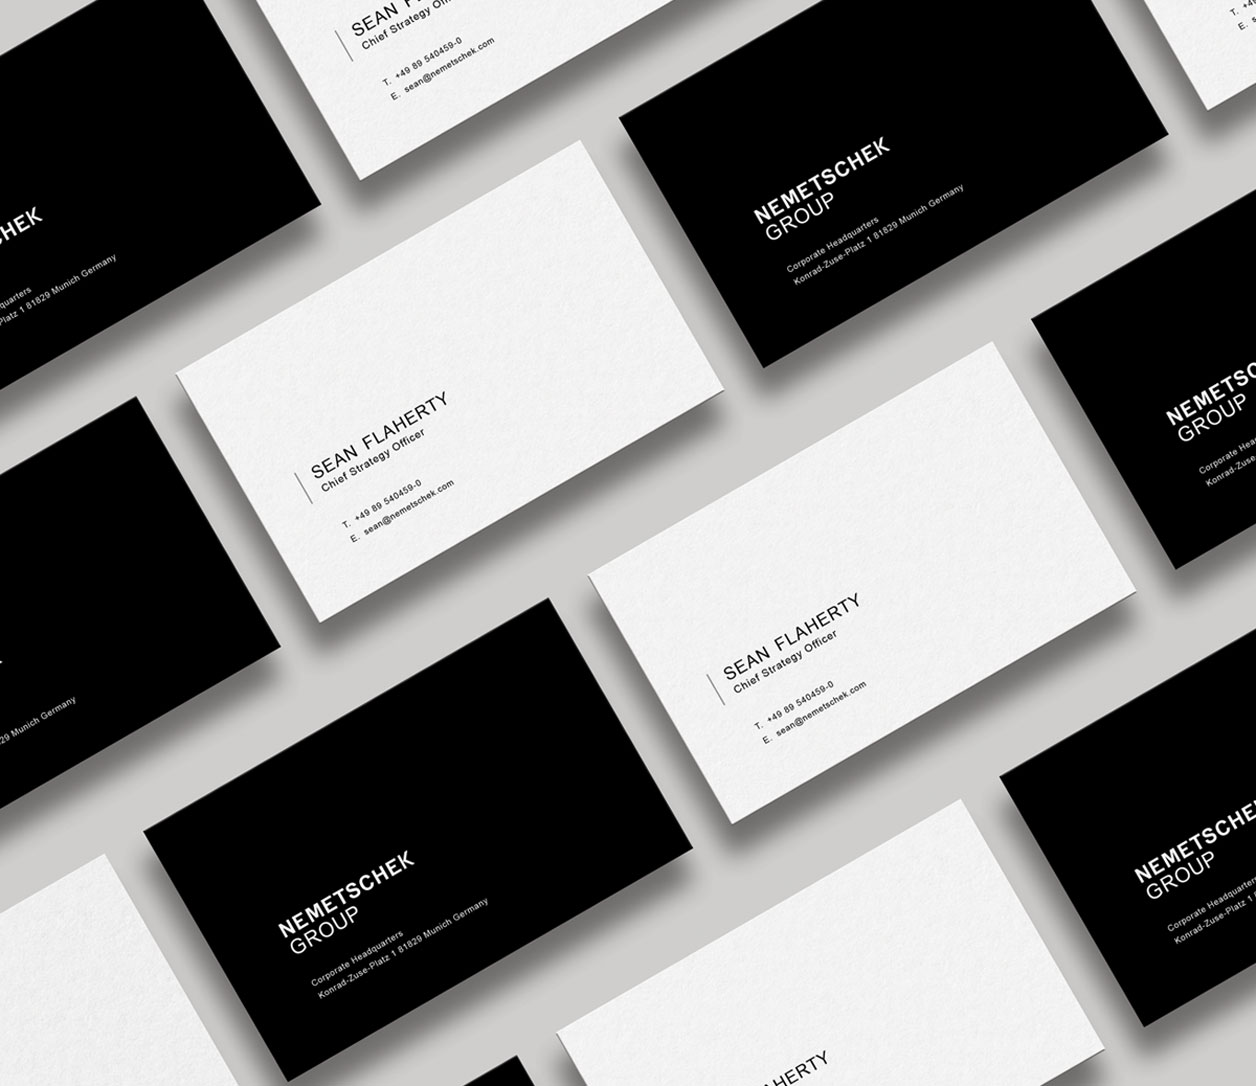 Nemetschek Group Rebrand